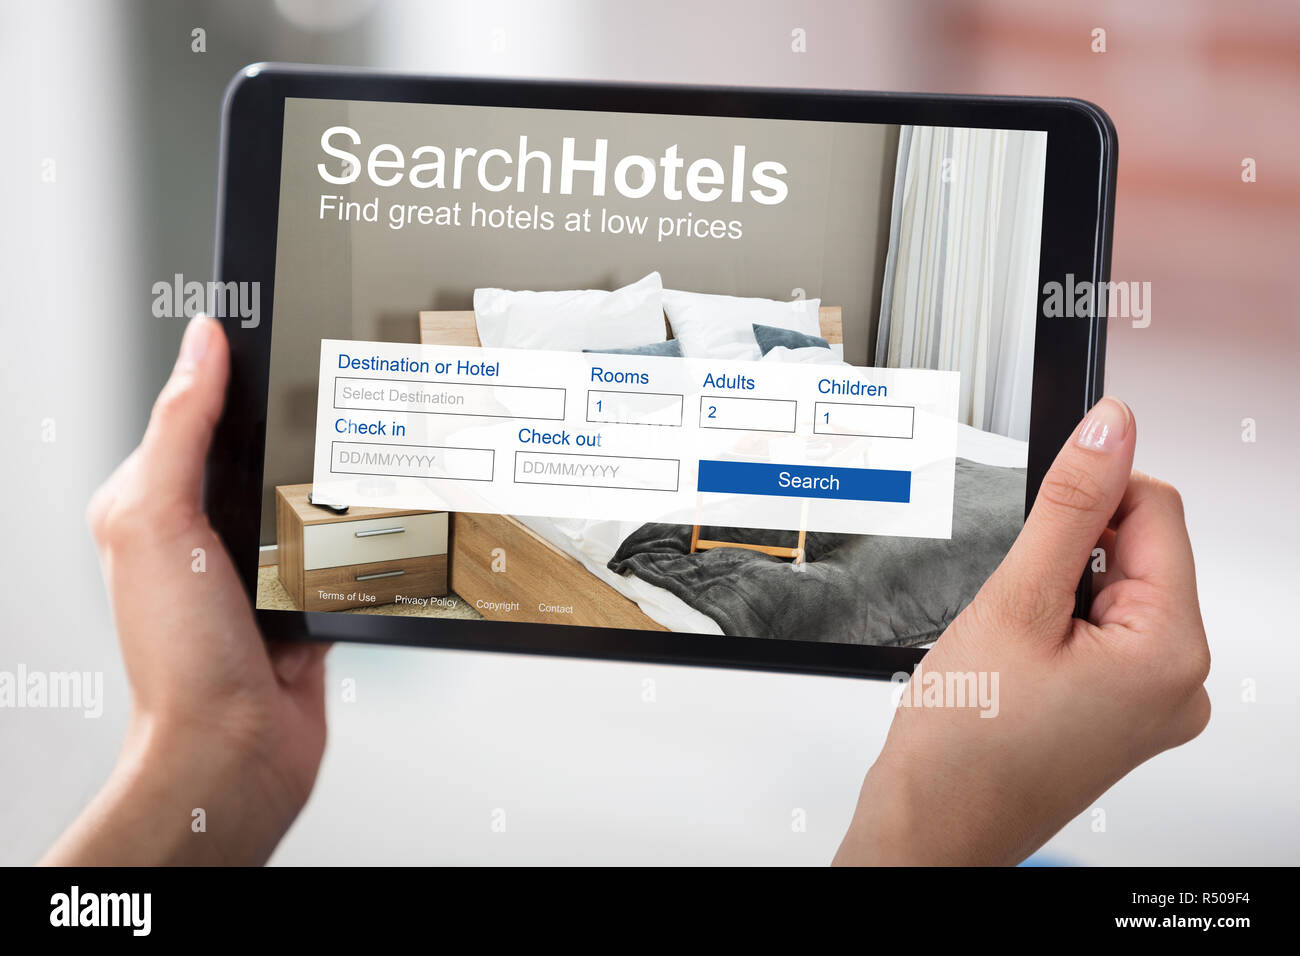 Woman Searching Online Low Priced Hotels - Stock Image